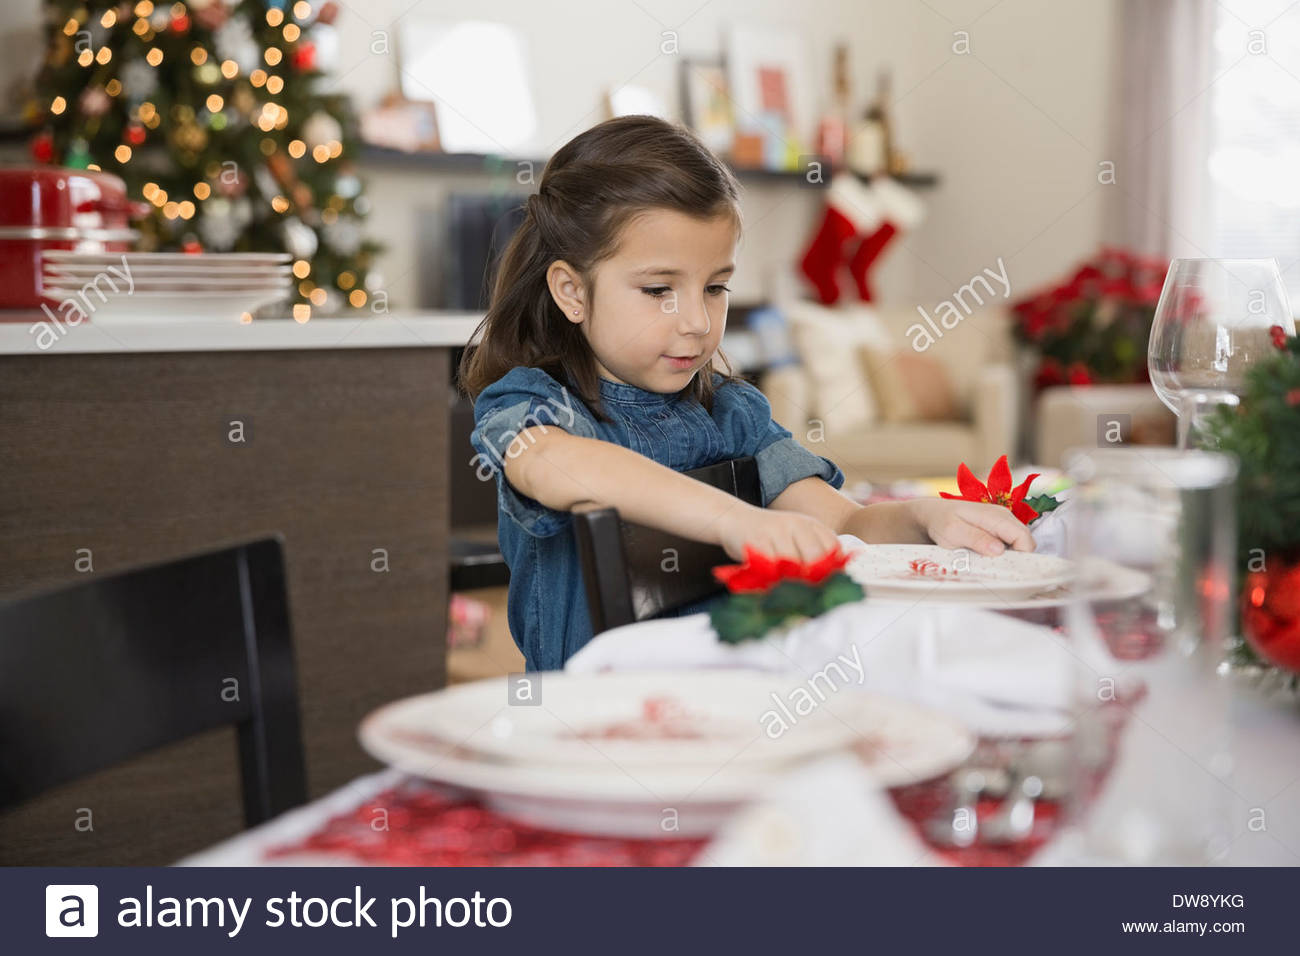 Cute girl setting Christmas dining table - Stock Image